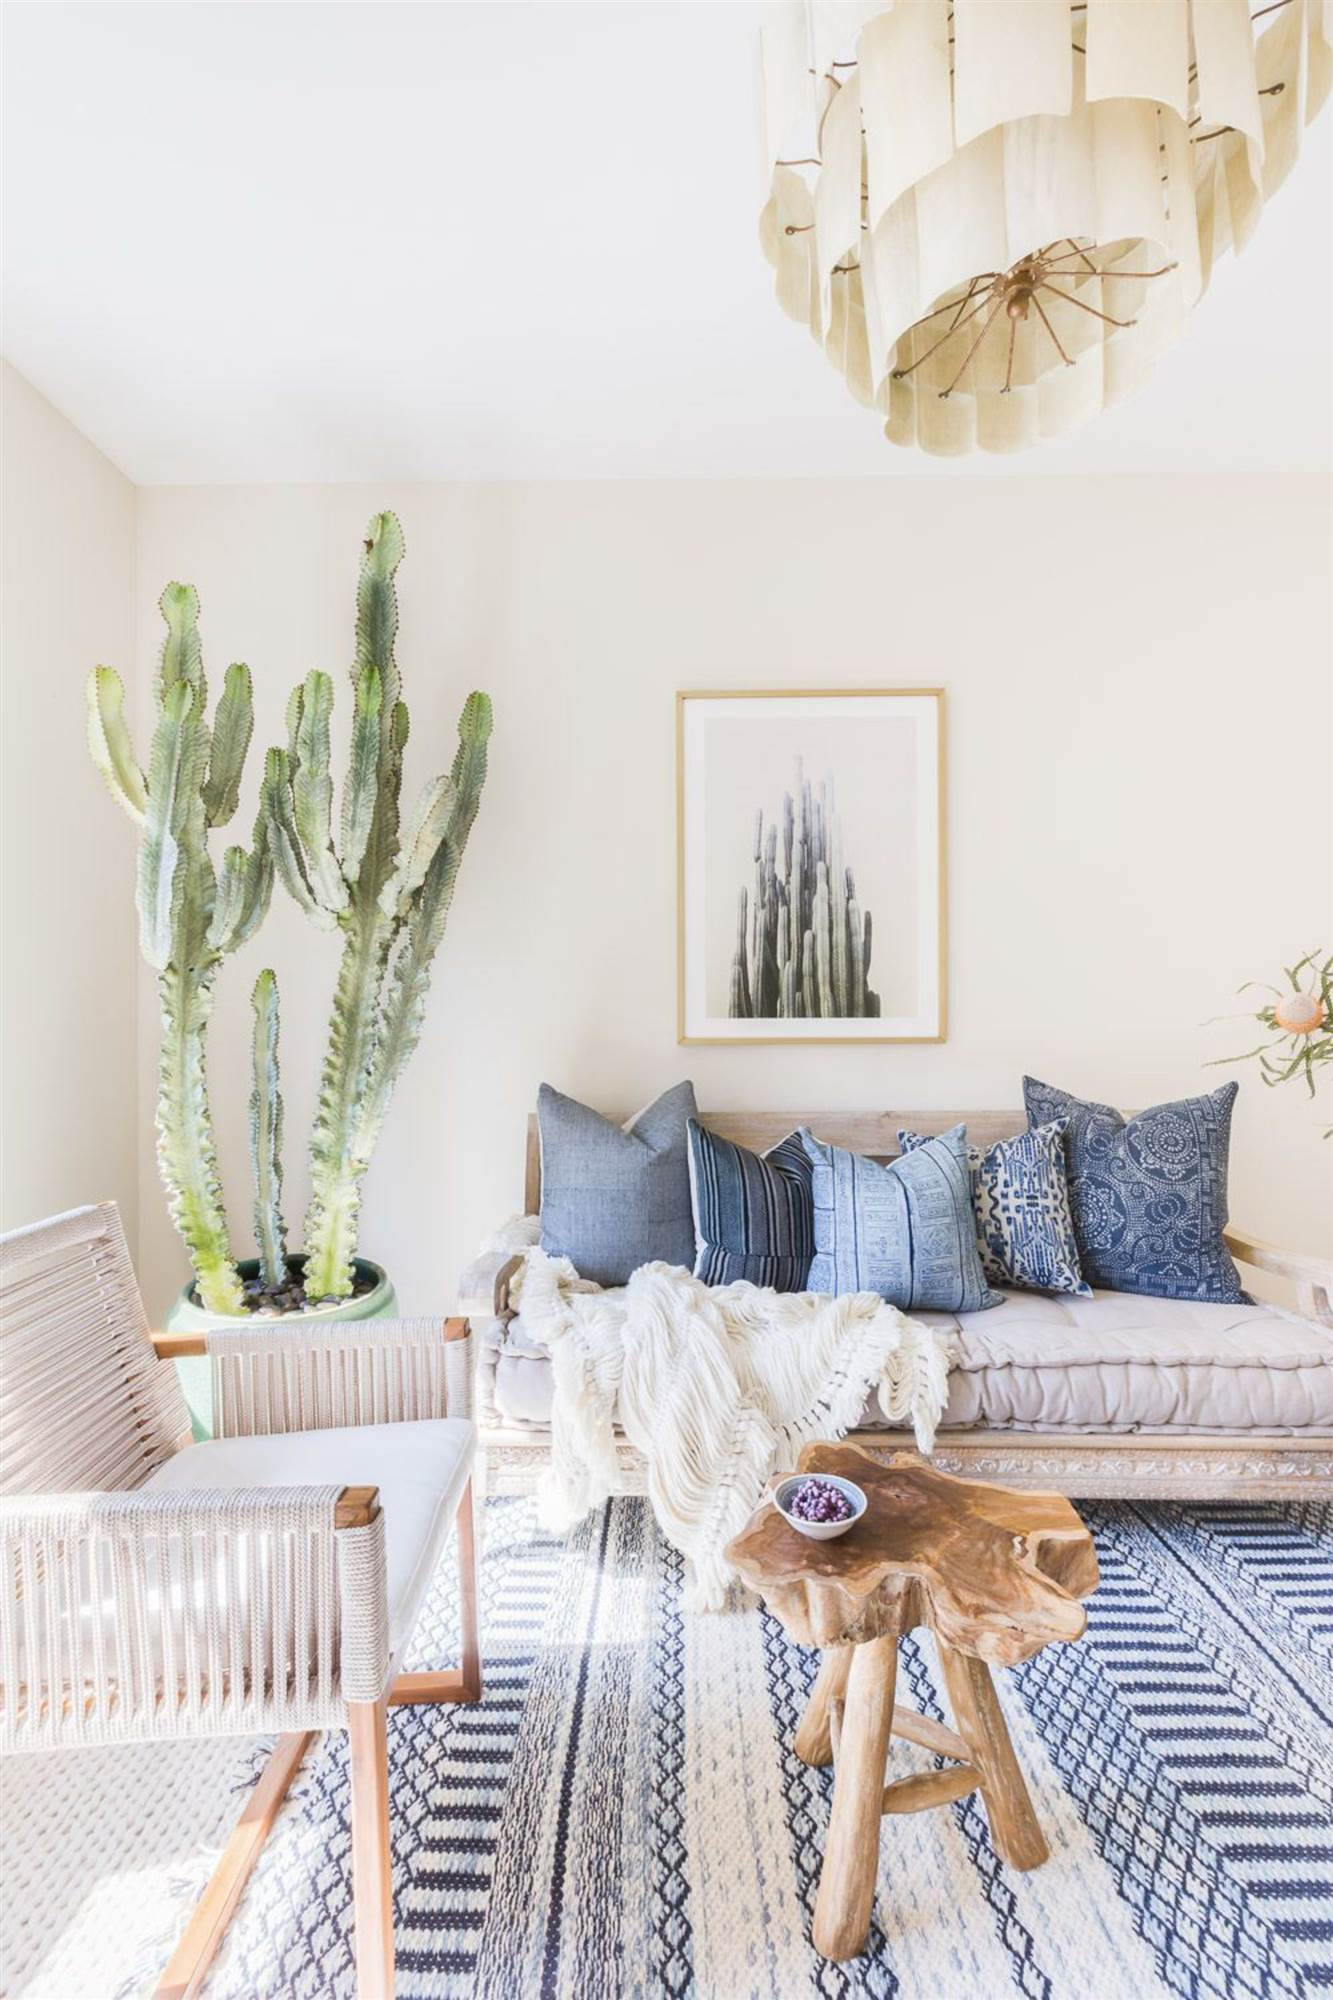 Estilo Boho Chic Claves Decorativas